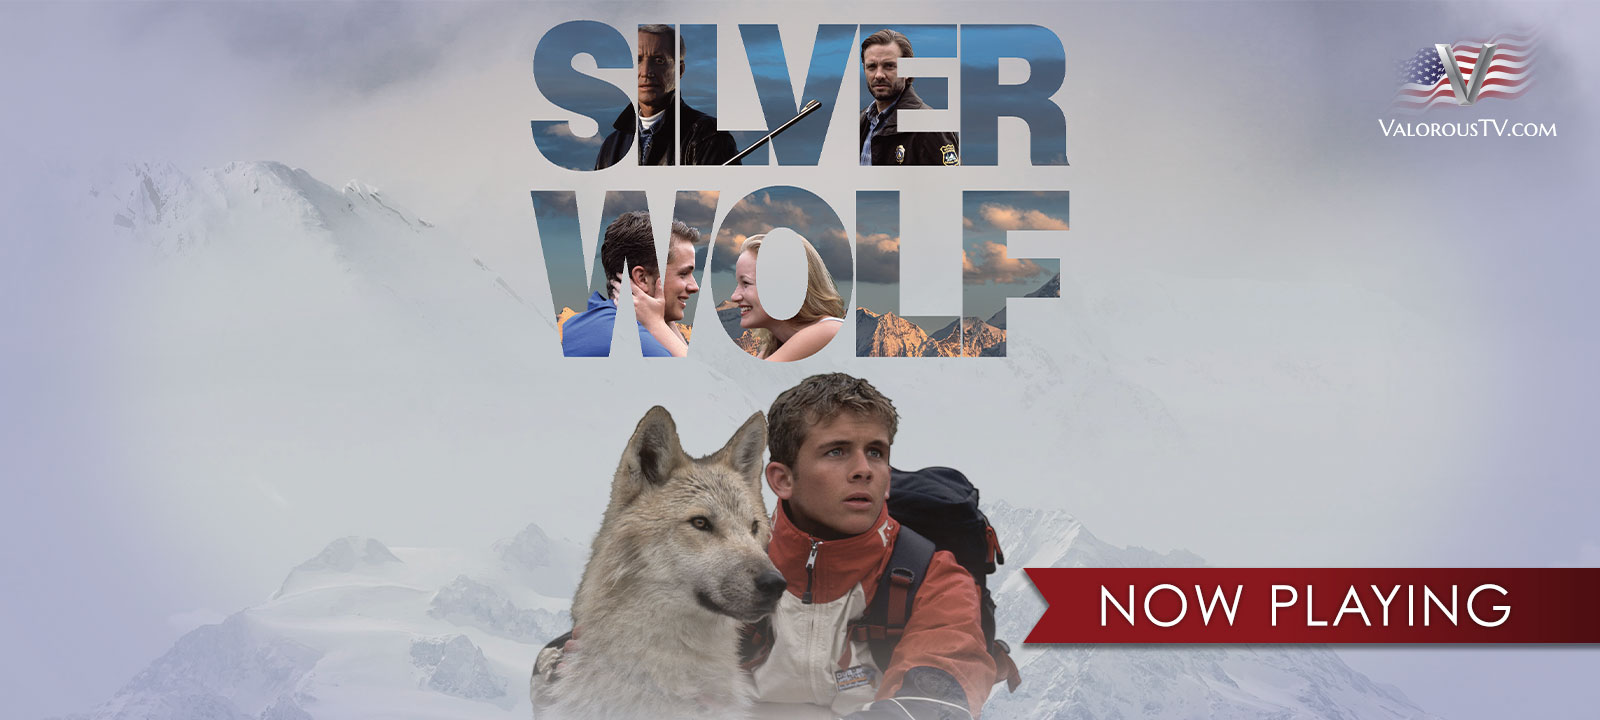 silverwolf_slider